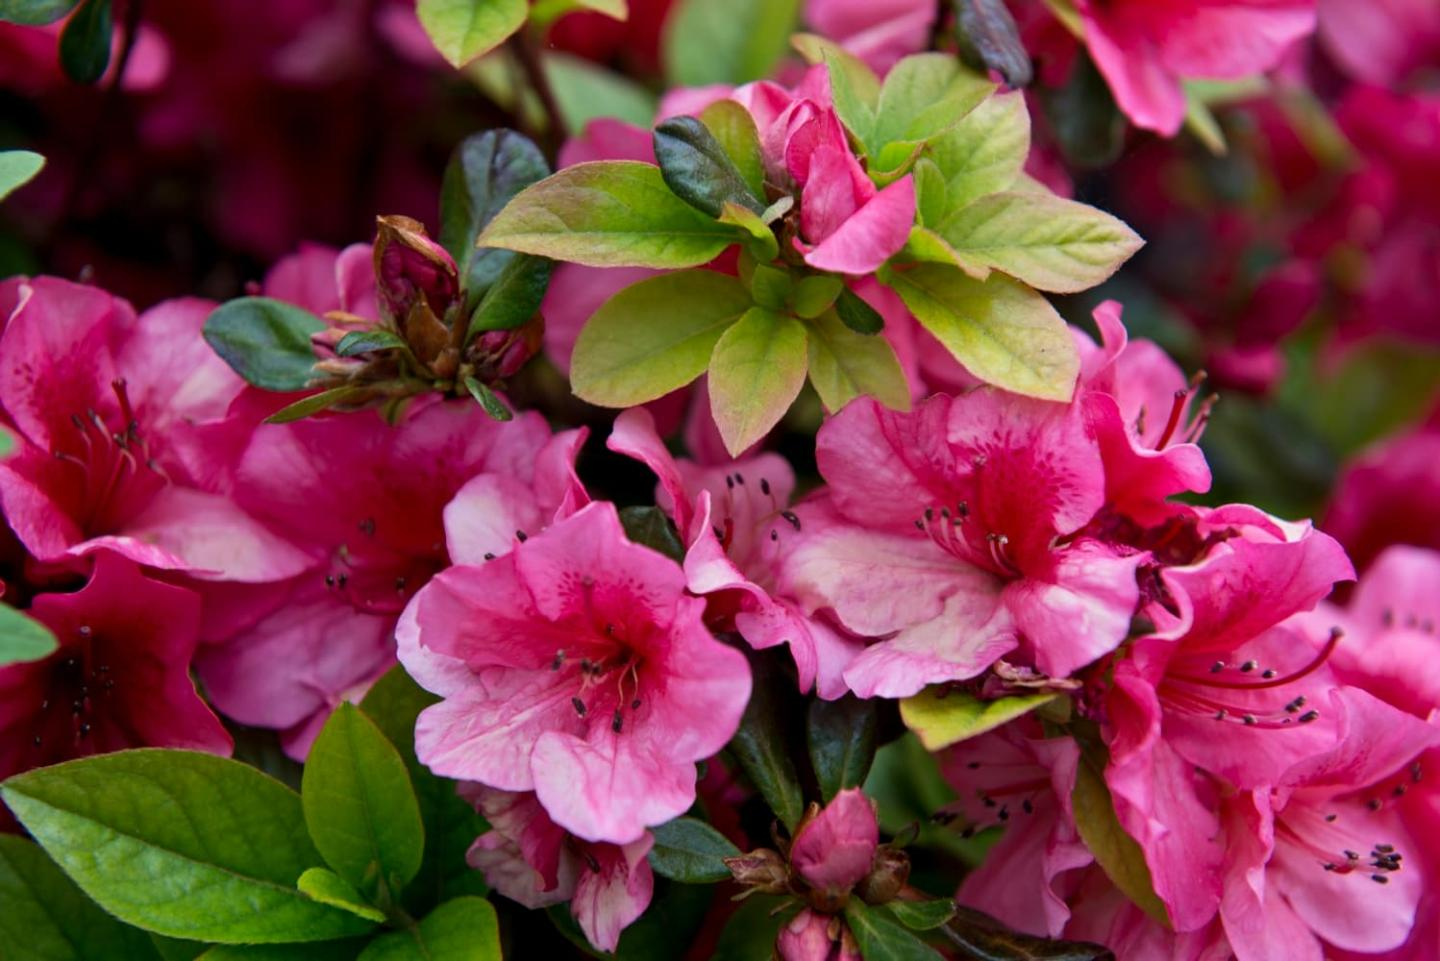 Pink flowers growing with green leaves.